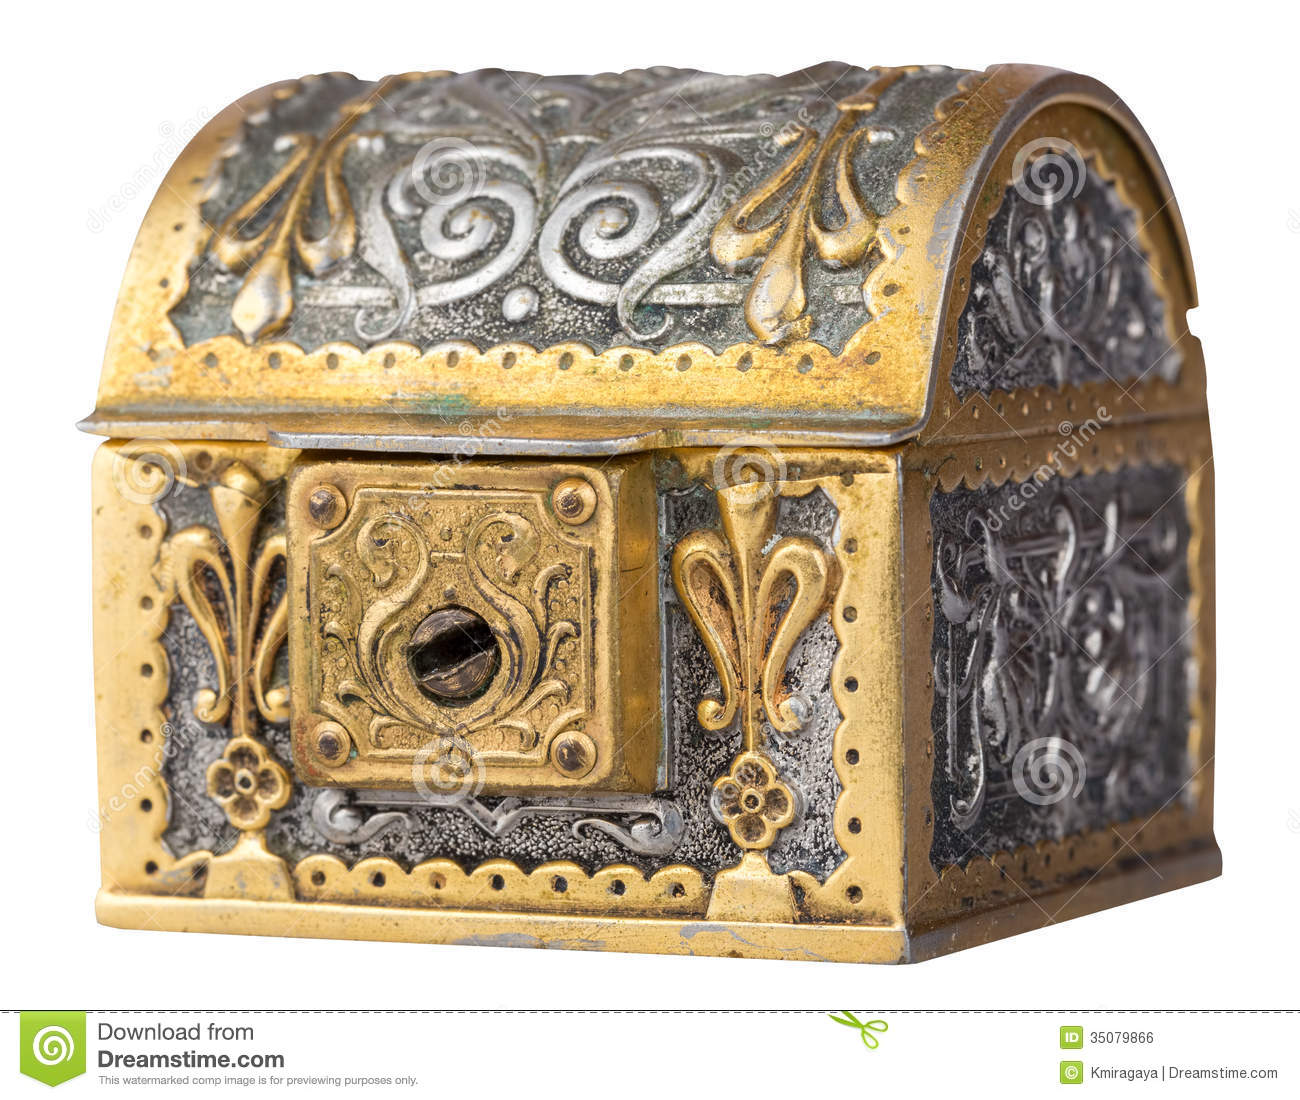 300979427063 in addition Clipart 2943 also K11920024 also 50 Inspiring Lock And Key Tattoos also Stock Images Padlock Illustration Closed Lock Security Isolated White Background Image37238964. on treasure chest lock and key